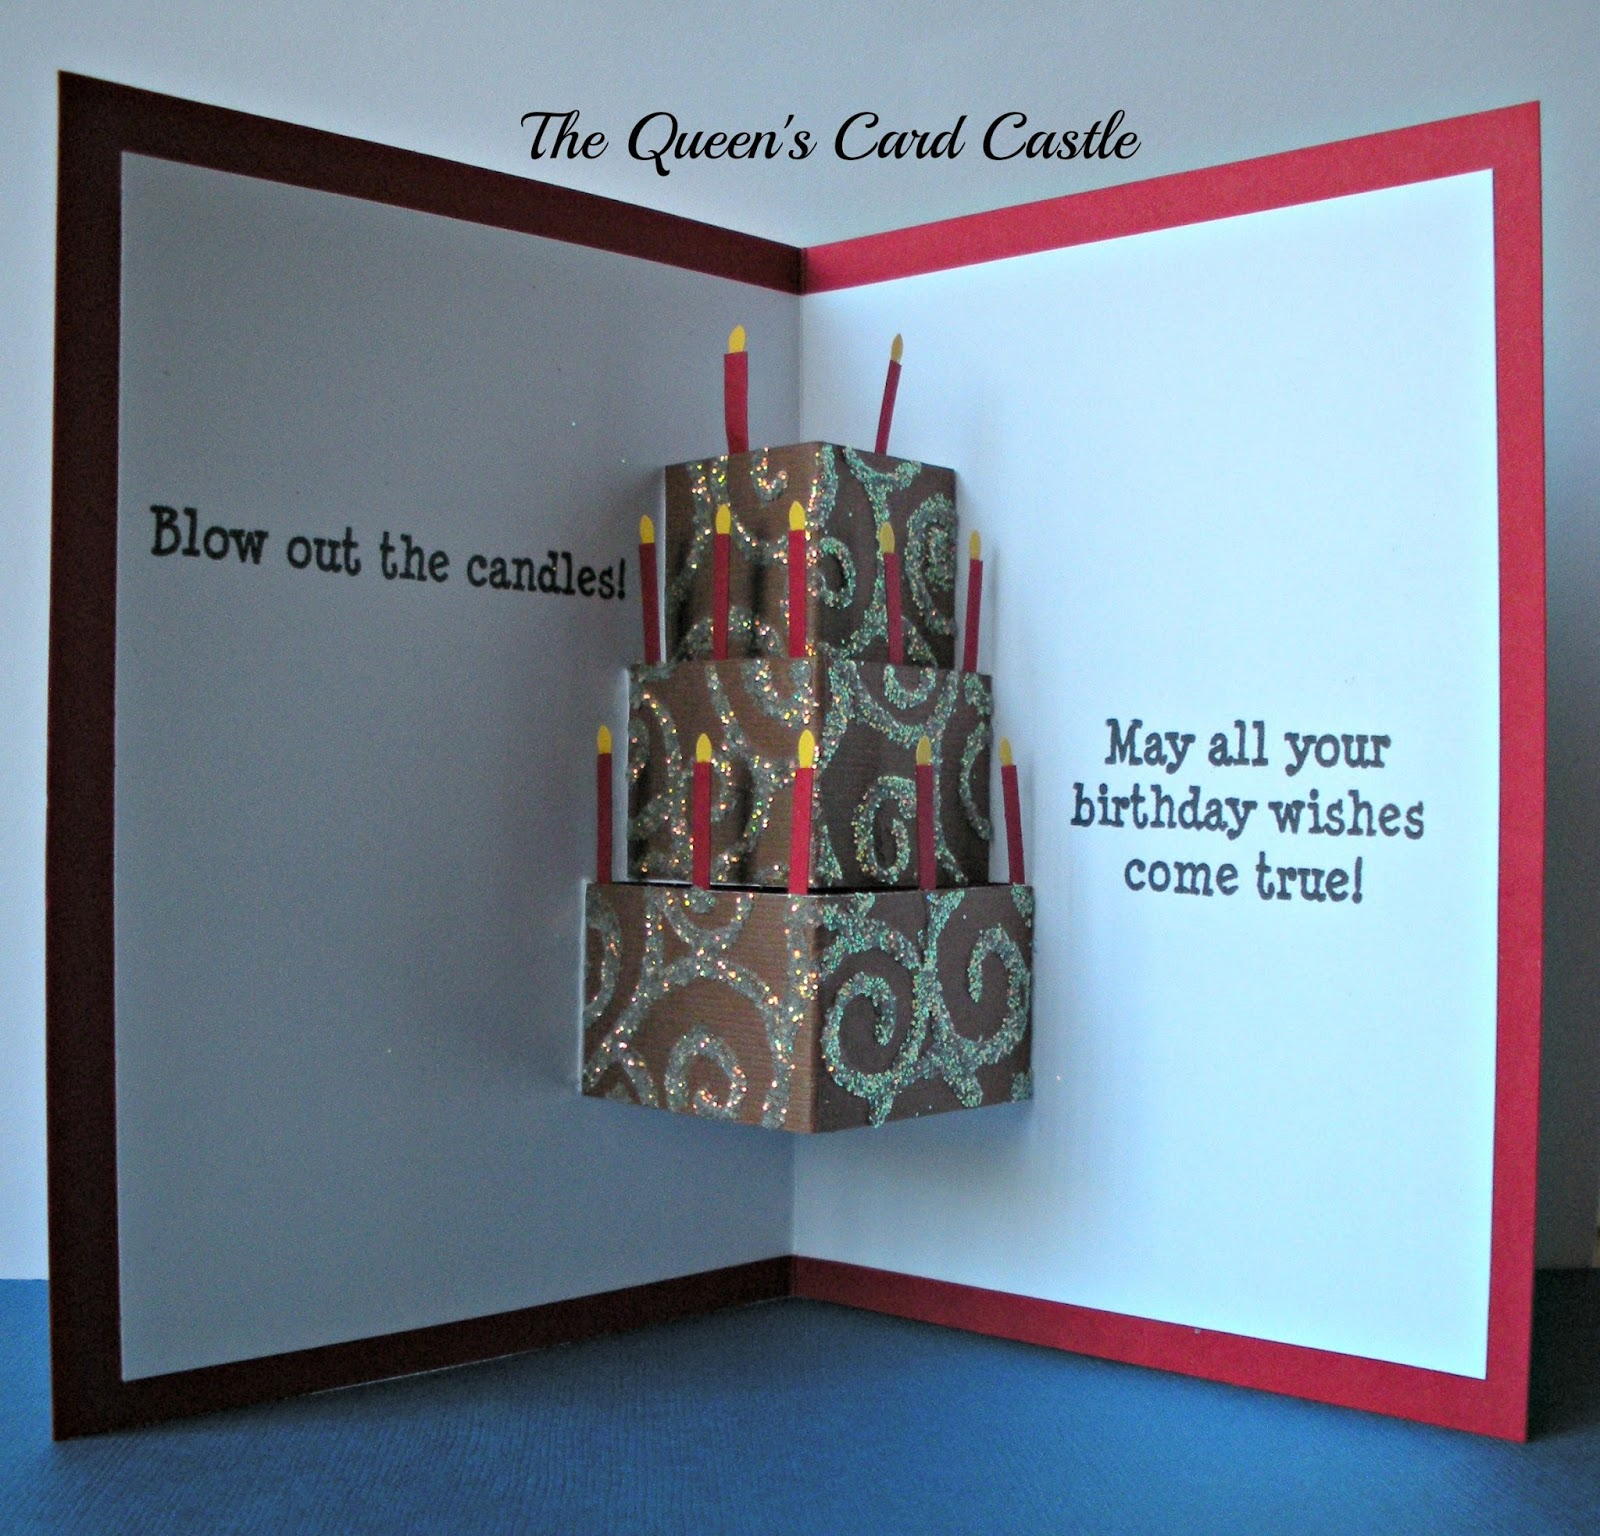 the queen's card castle birthday card